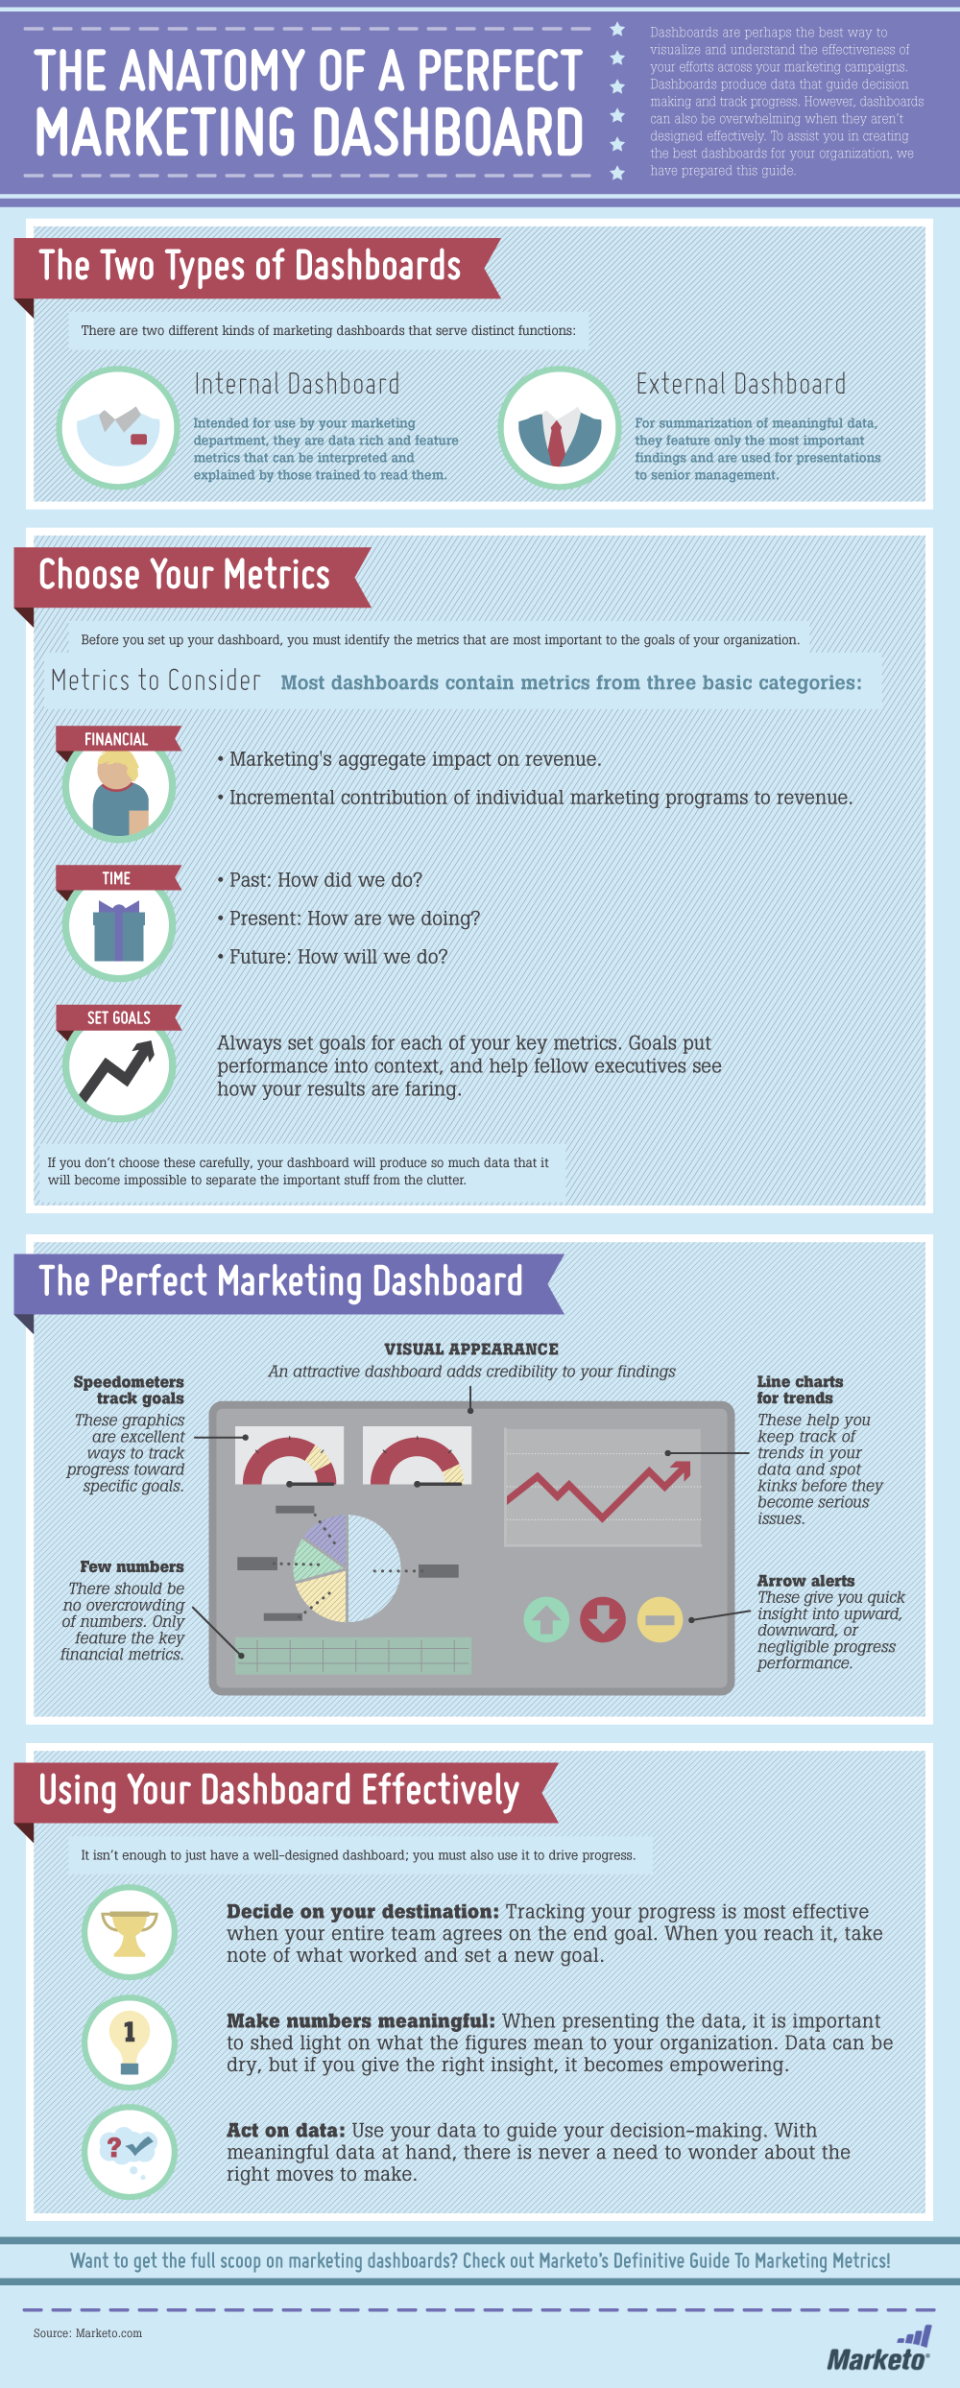 The Marketing Dashboard Infographic by Marketo